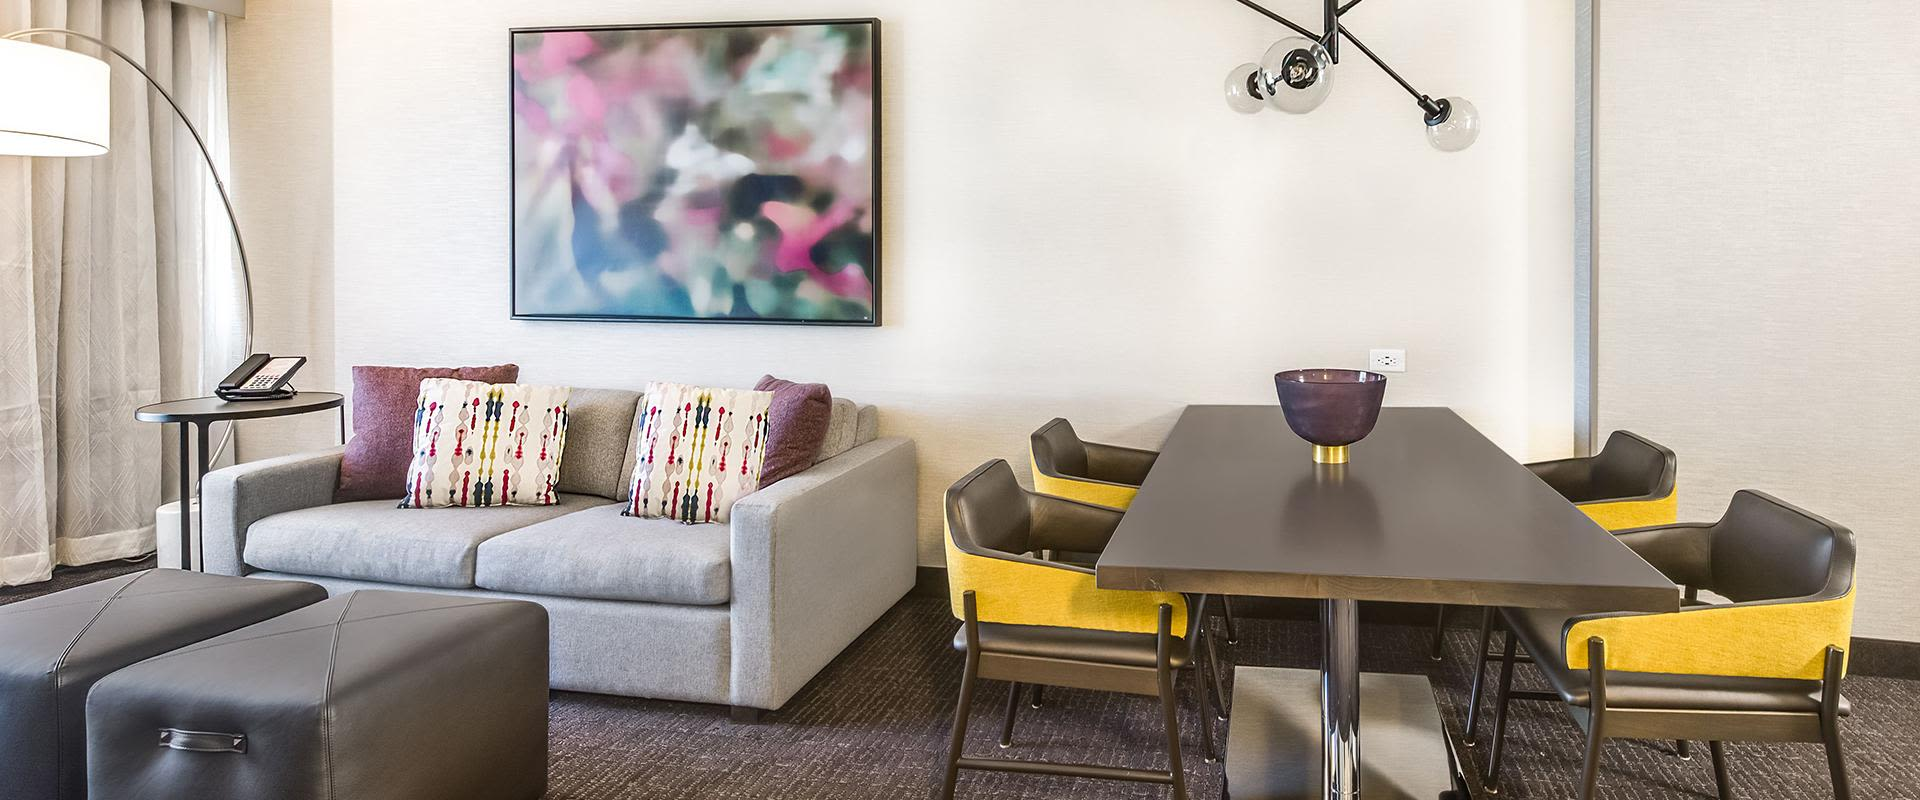 Denver Suite Sitting Area With Table